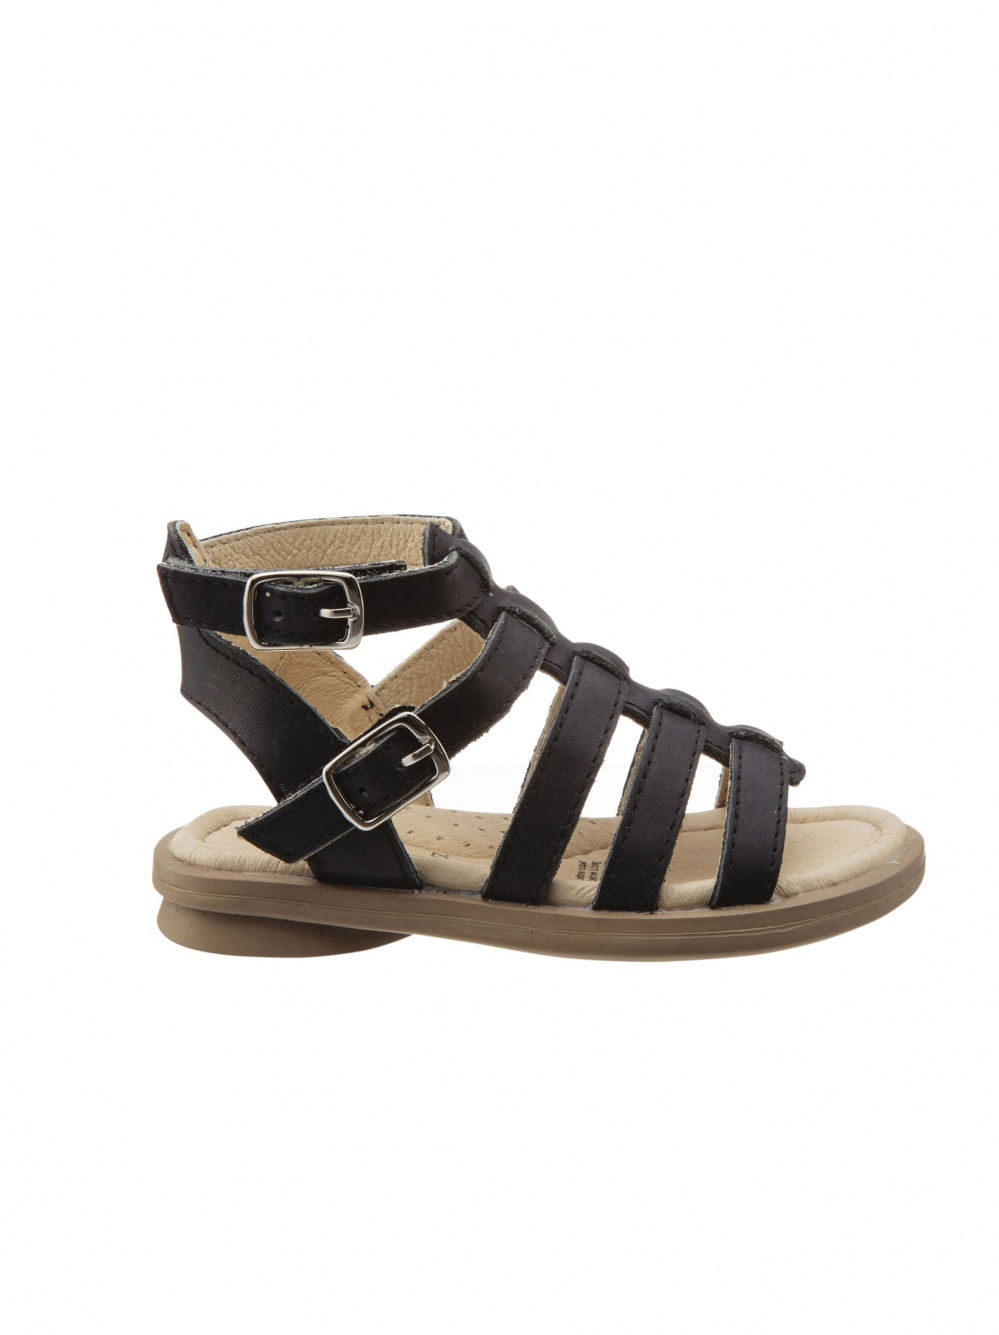 Old Soles Tall Gladiator Sandal